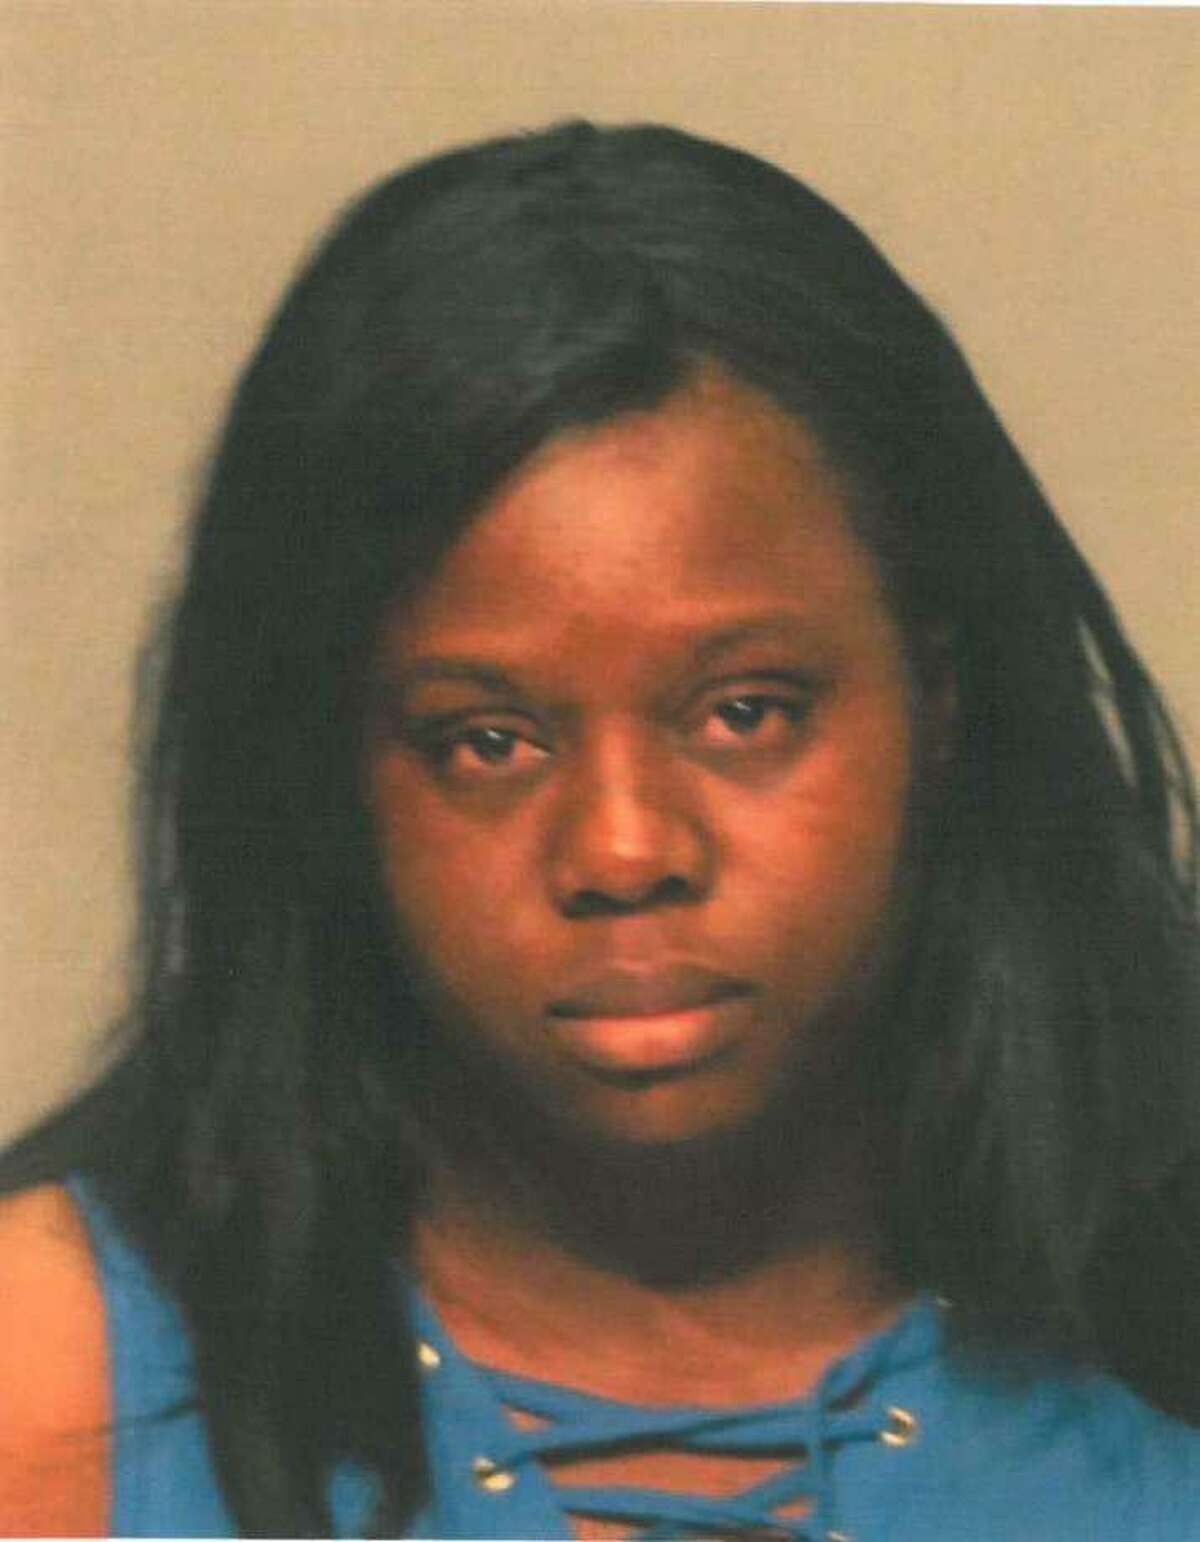 Julienne Julmeus, 25, of Stamford, pleaded guilty to the first-degree larceny theft of $106,000 from her convenience store on East Putnam Avenue in Greenwich. A Stamford judge will keep the ex-store manager out of jail as long as she begins paying the money back.